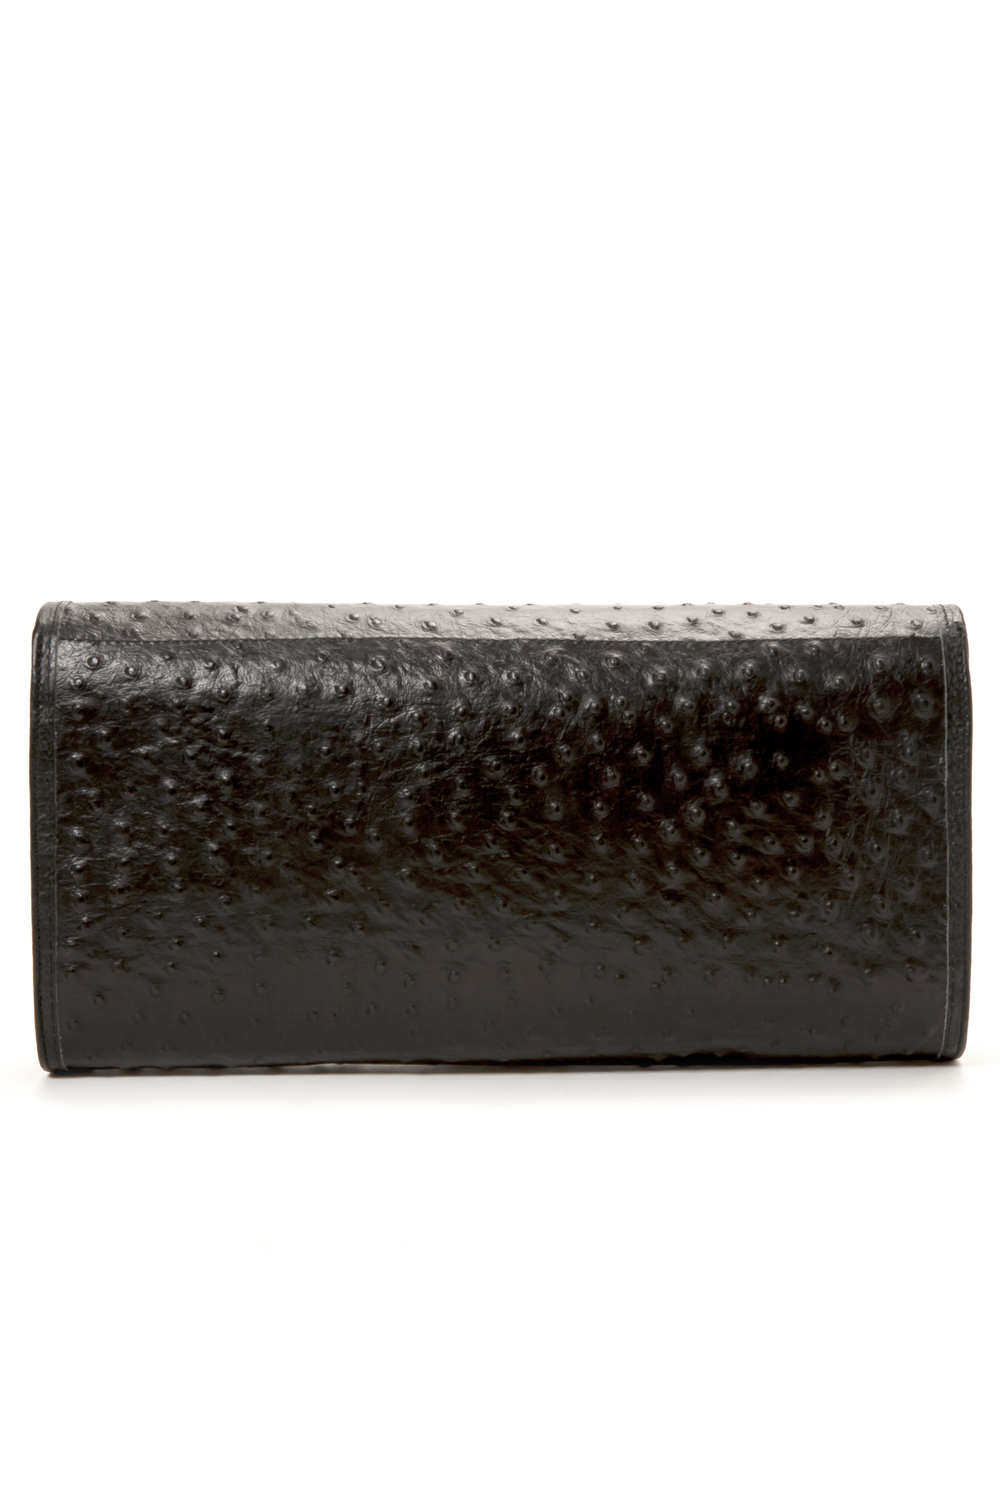 'Cara' Envelope Clutch in Black Ostrich Print Leather | Mel Boteri | Back View